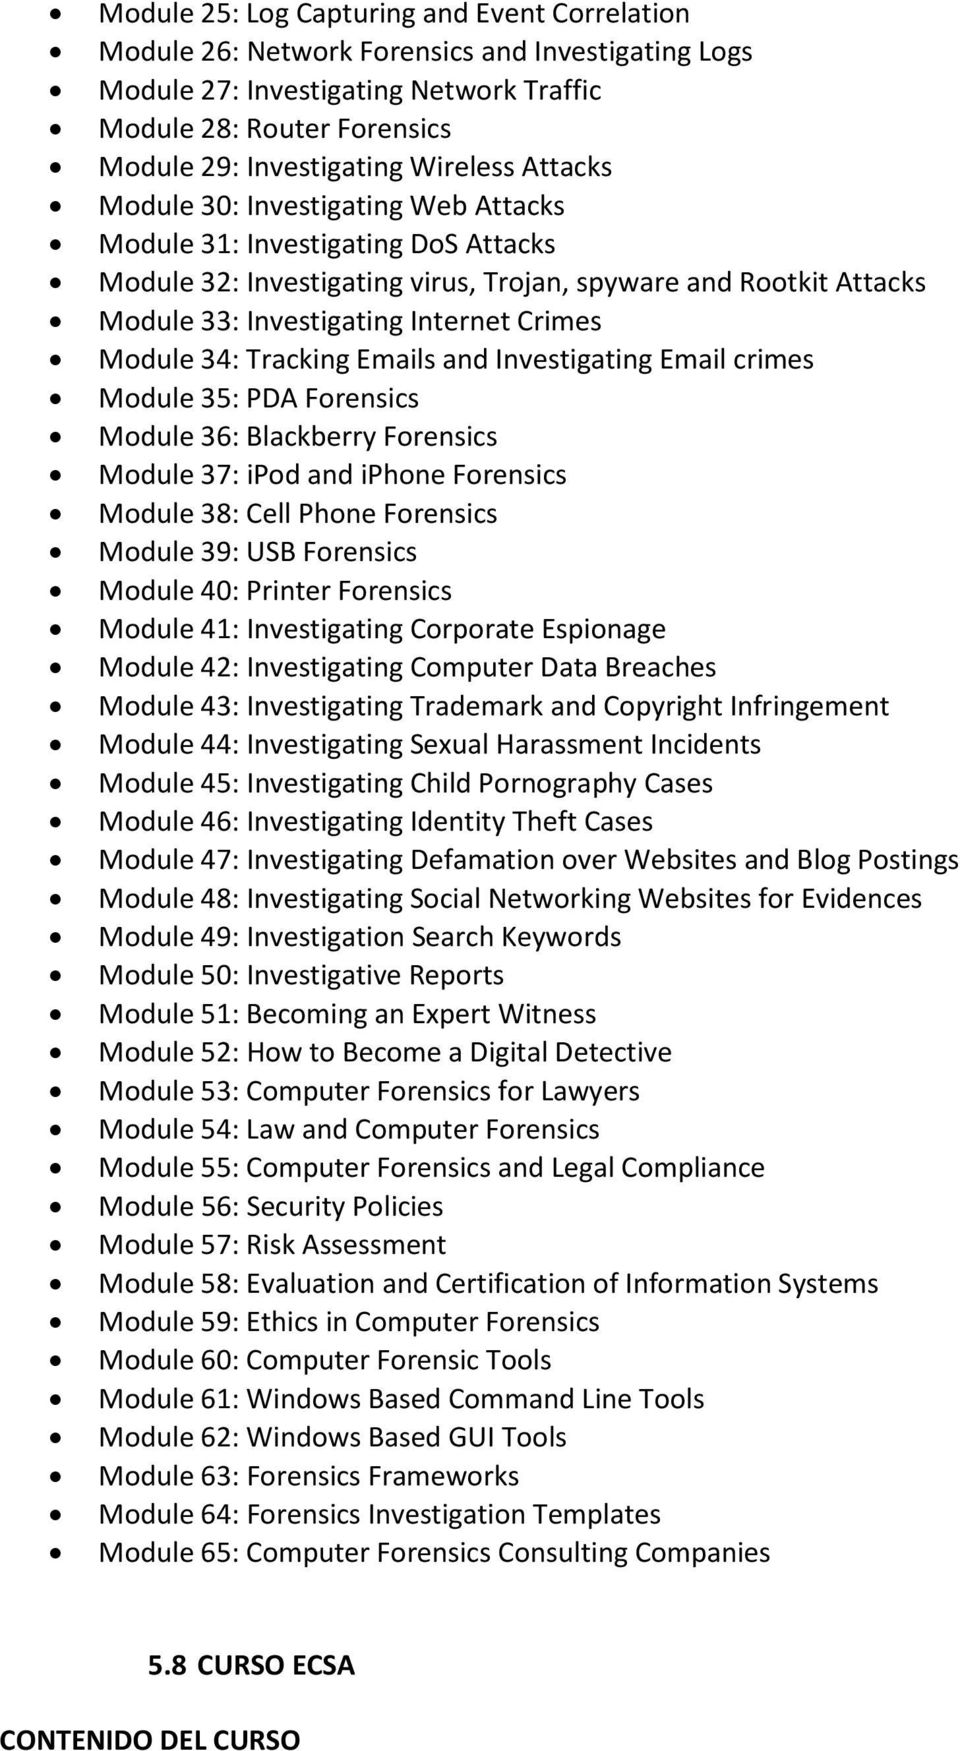 Module 34: Tracking Emails and Investigating Email crimes Module 35: PDA Forensics Module 36: Blackberry Forensics Module 37: ipod and iphone Forensics Module 38: Cell Phone Forensics Module 39: USB